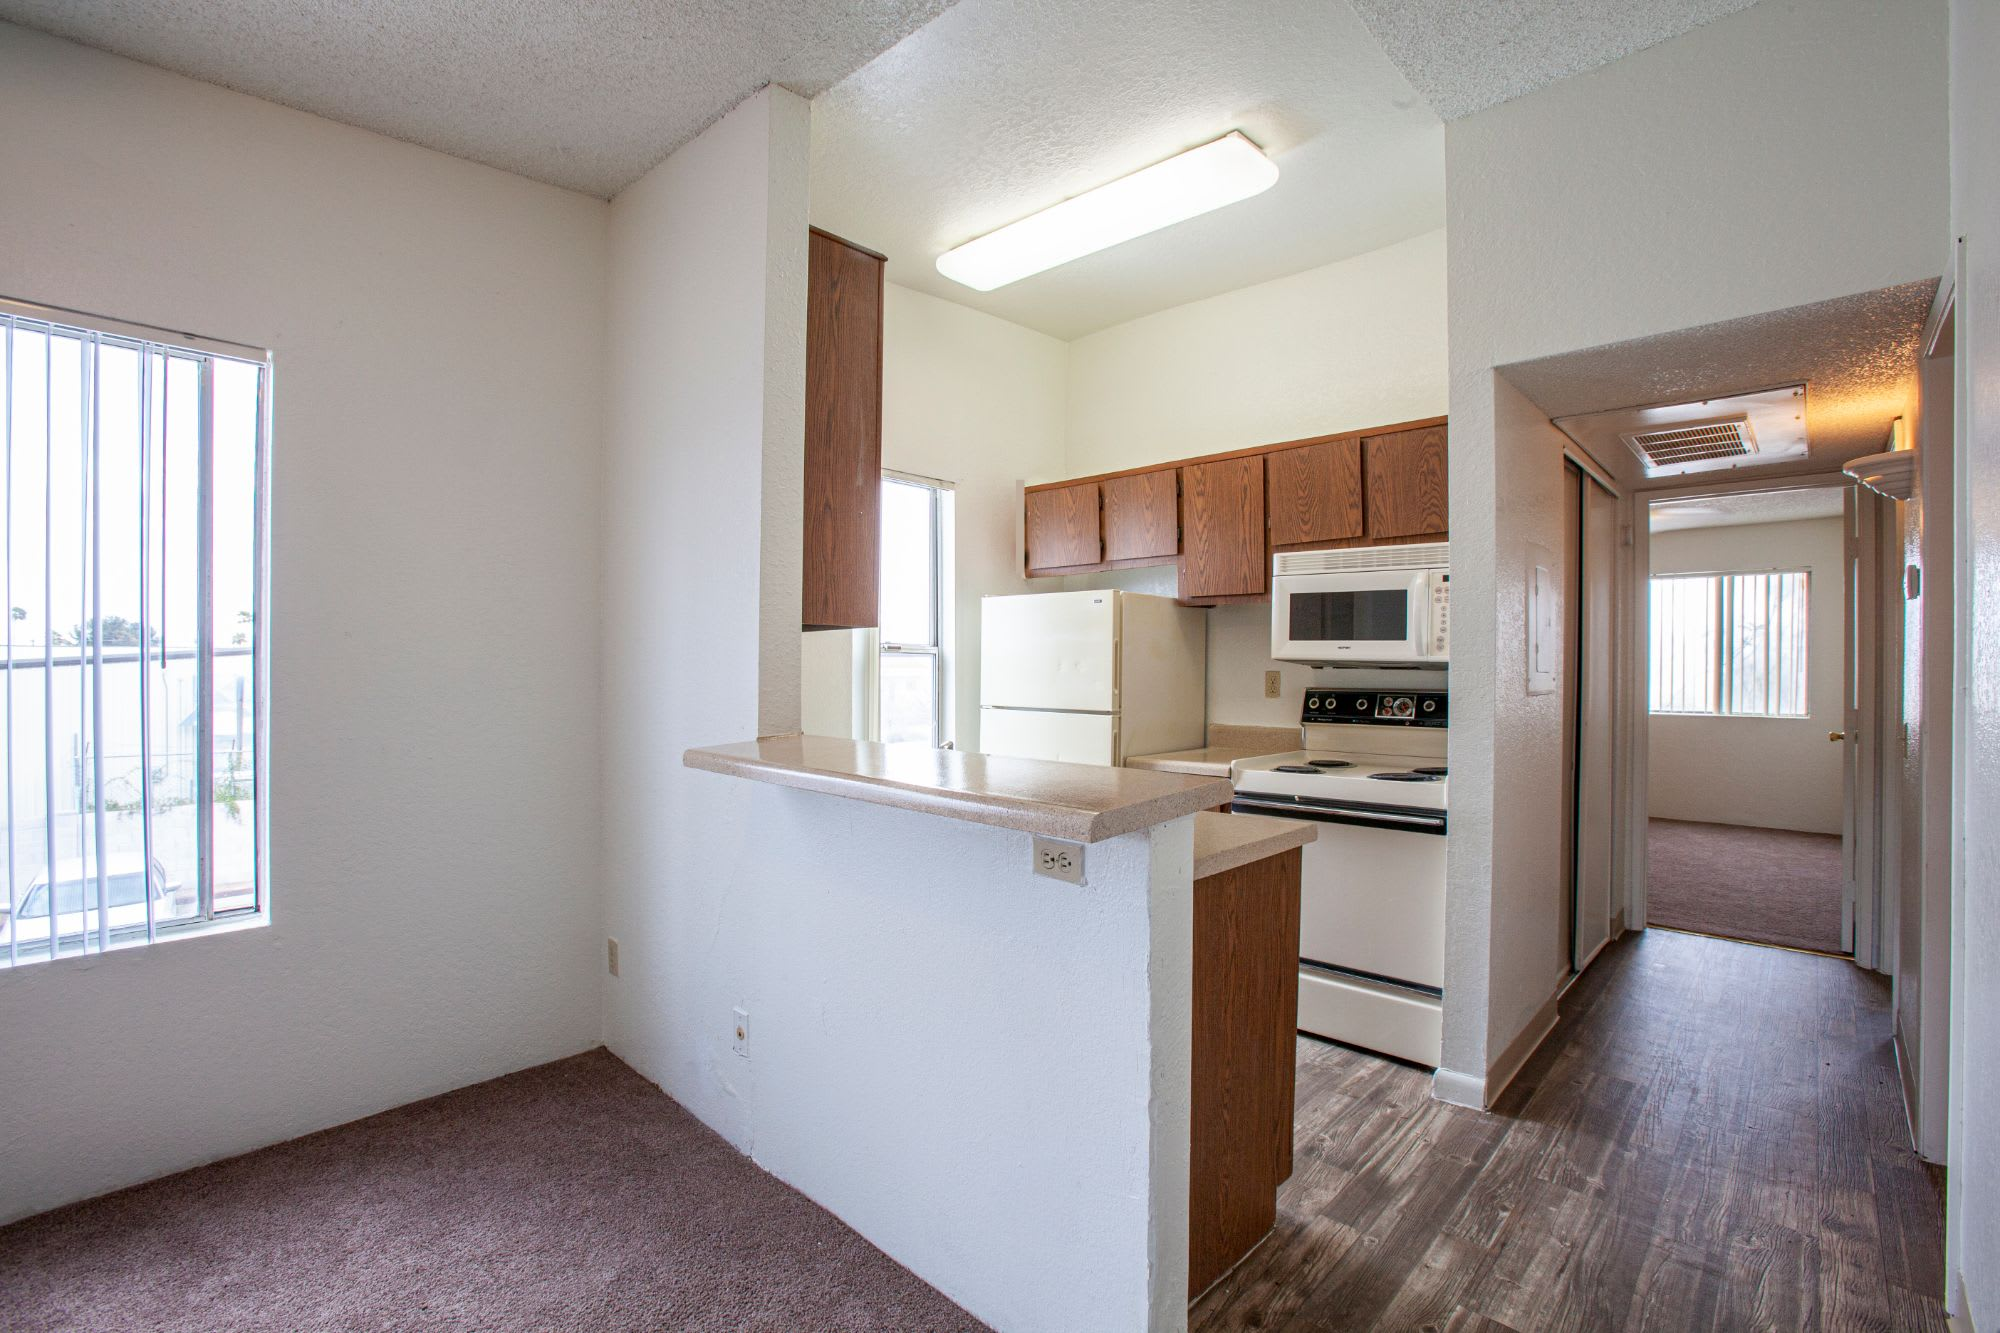 Kitchen and living room at Casa Bella Apartments in Tucson AZ 4-2020